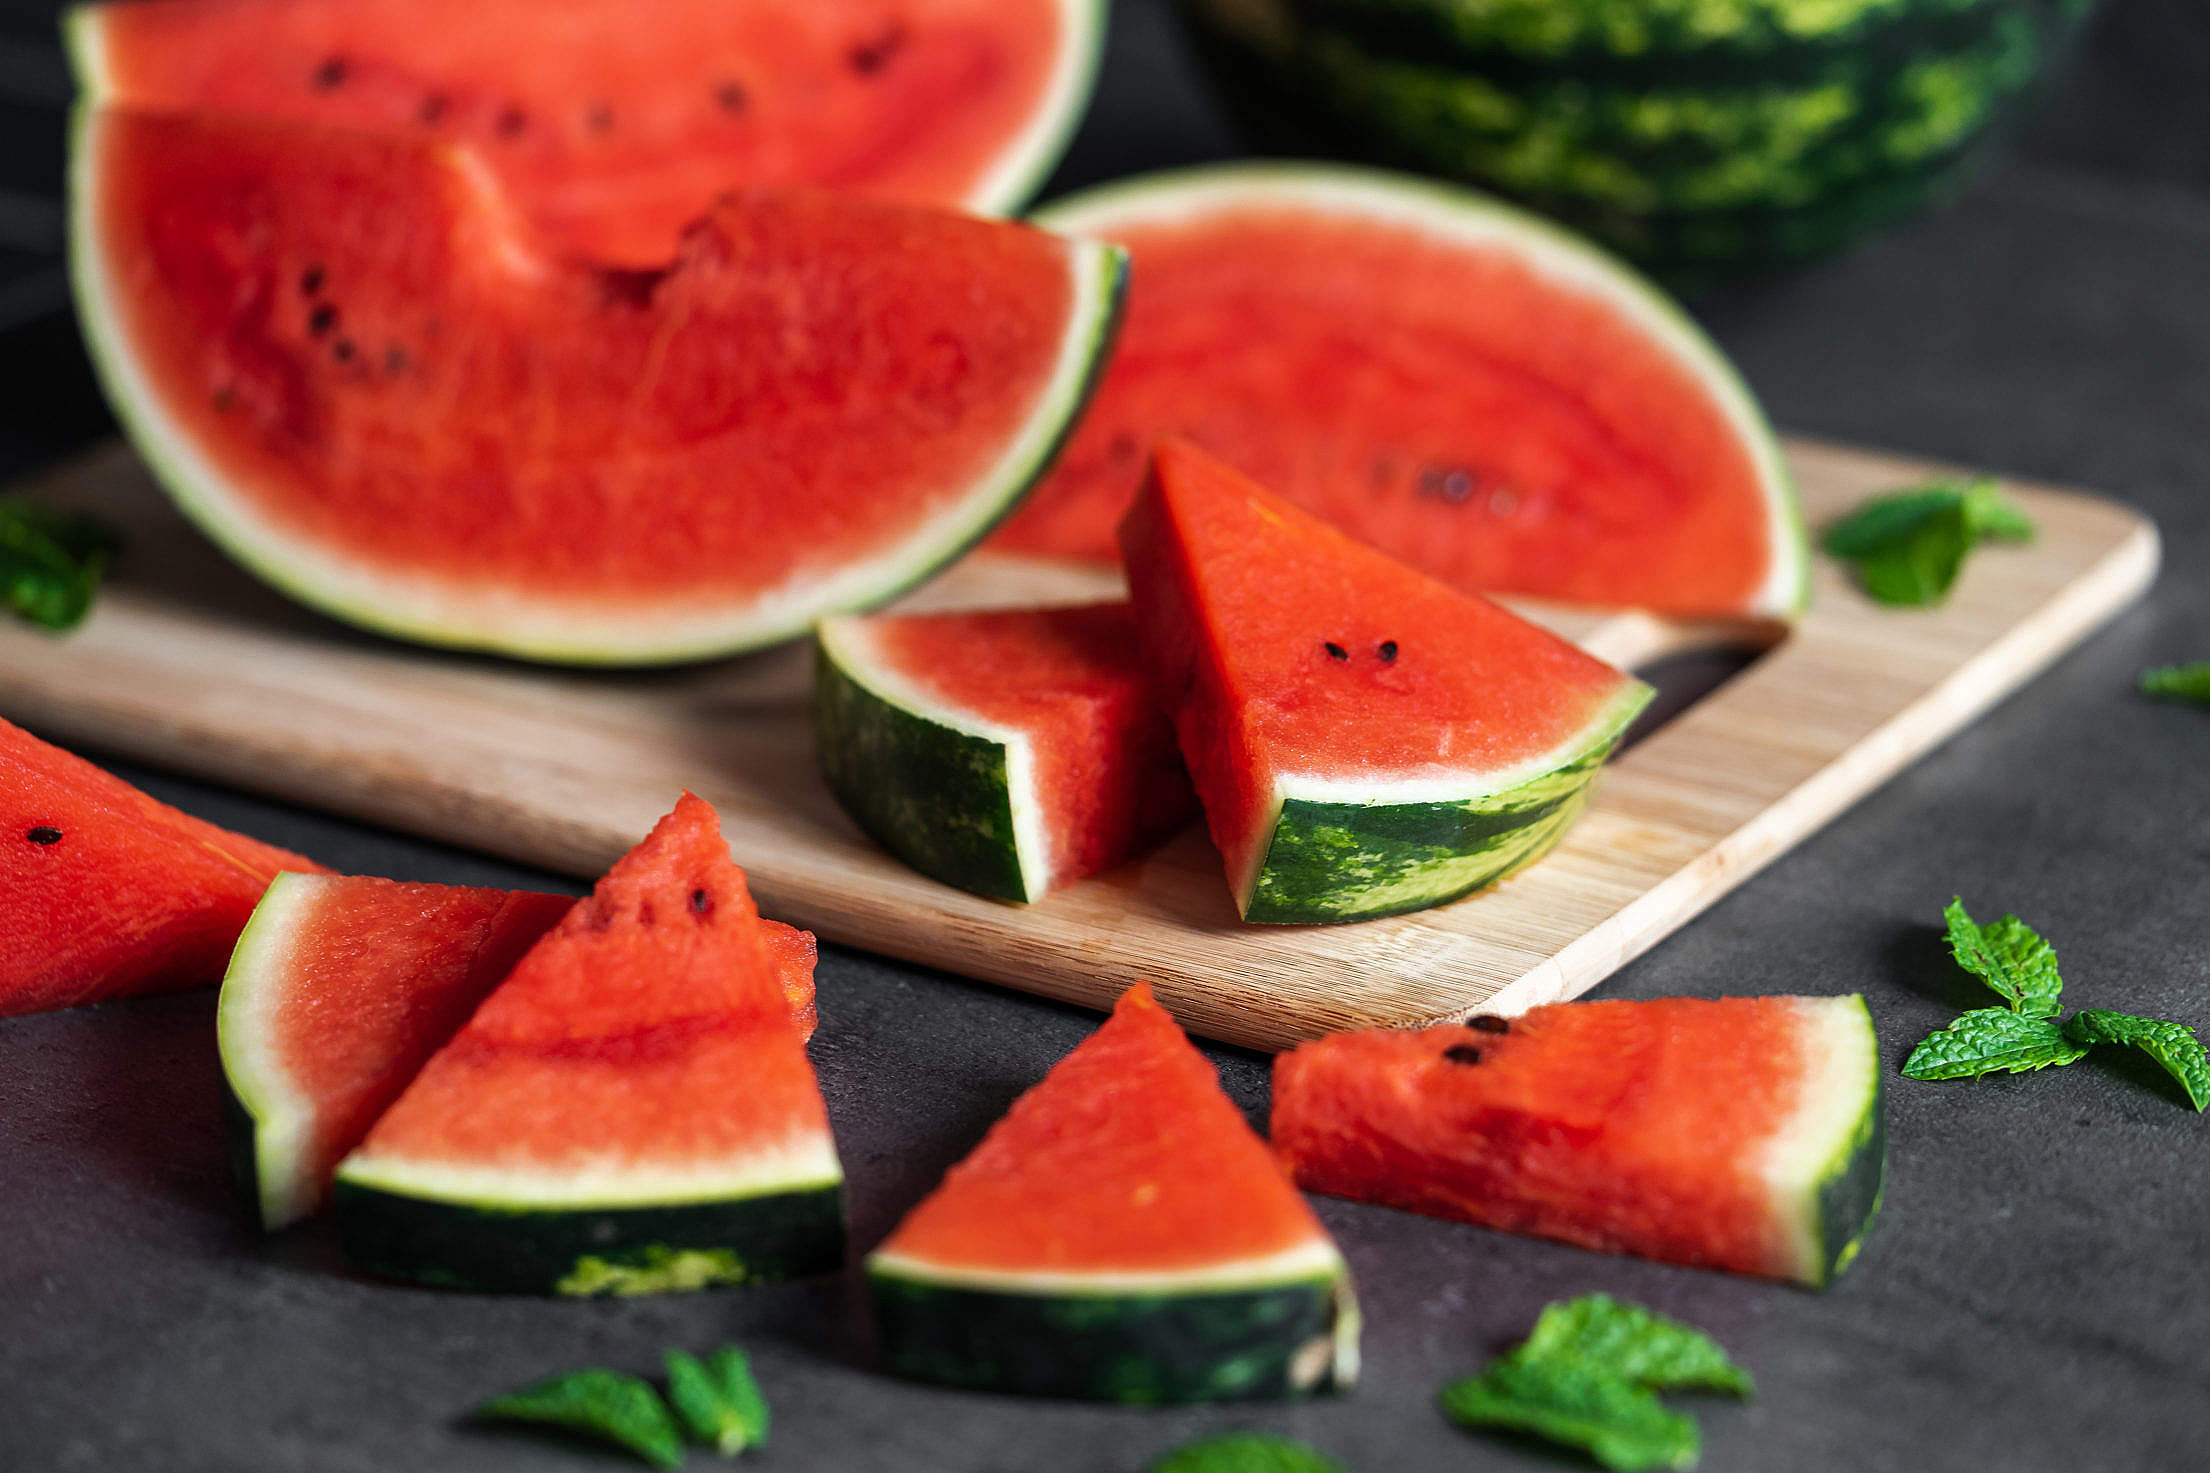 Slices of Watermelon Free Stock Photo